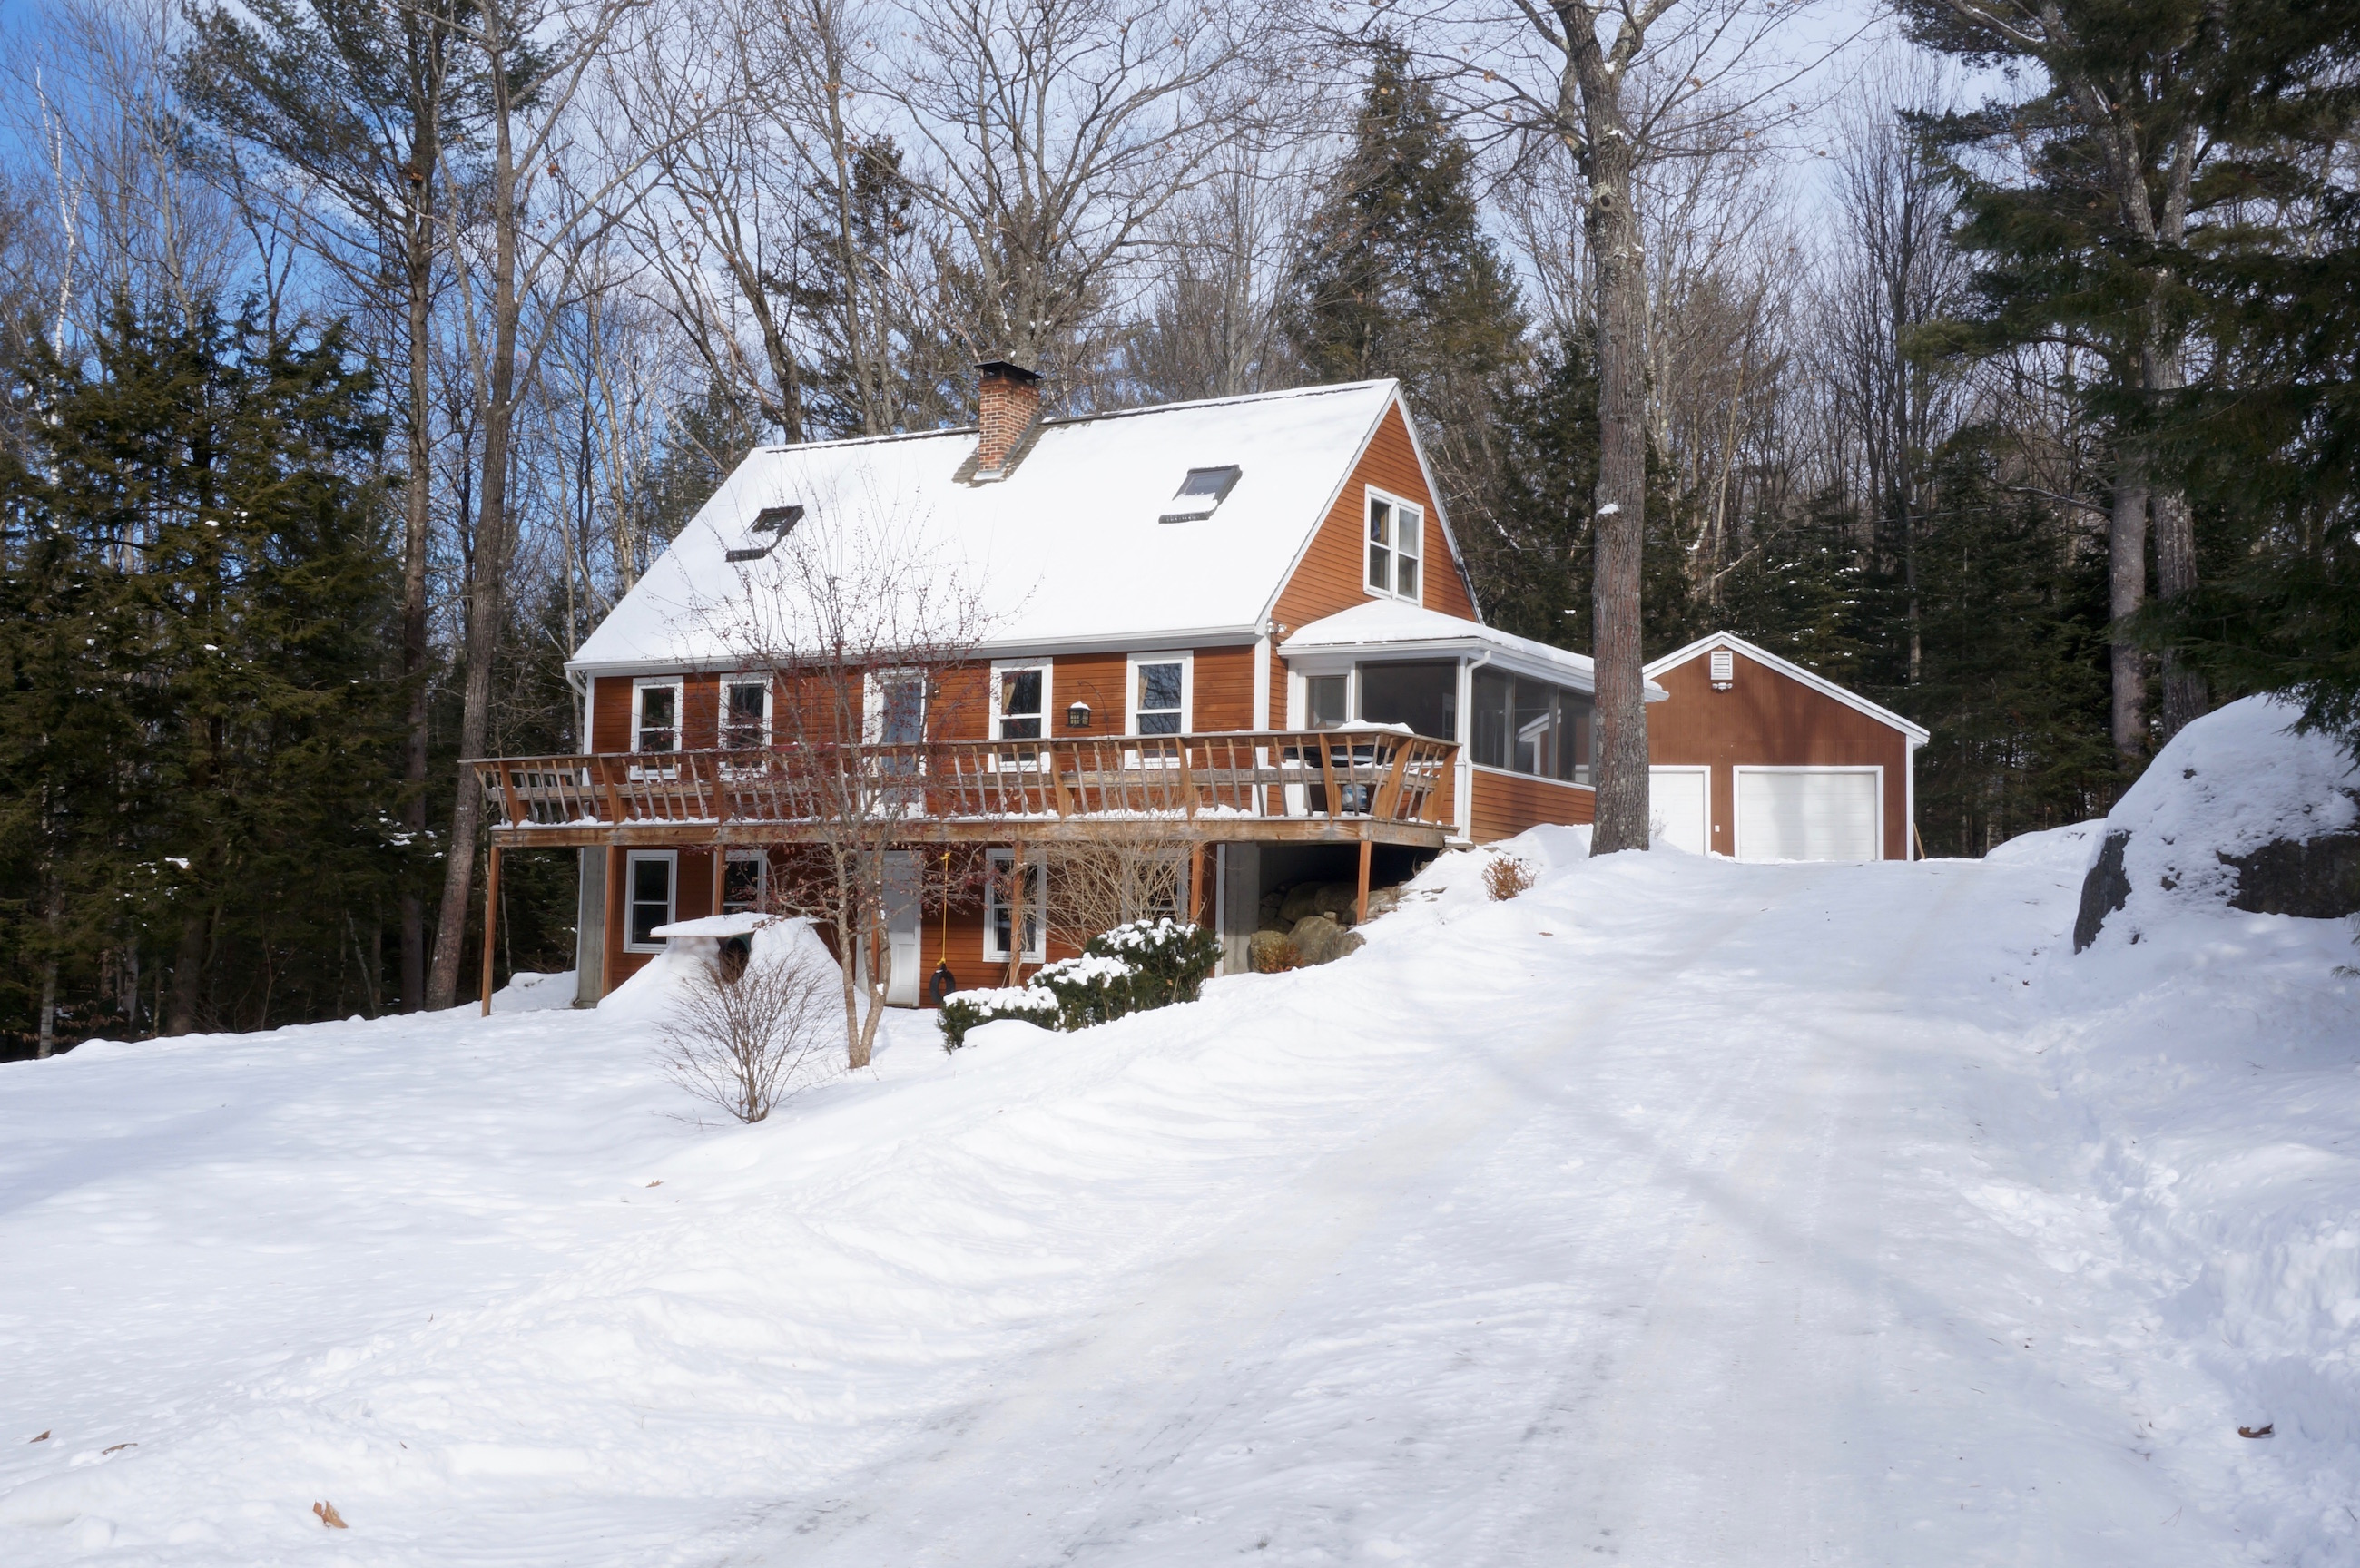 Single Family Home for Sale at 21 Searle Hill Rd, Danbury Danbury, New Hampshire 03230 United States